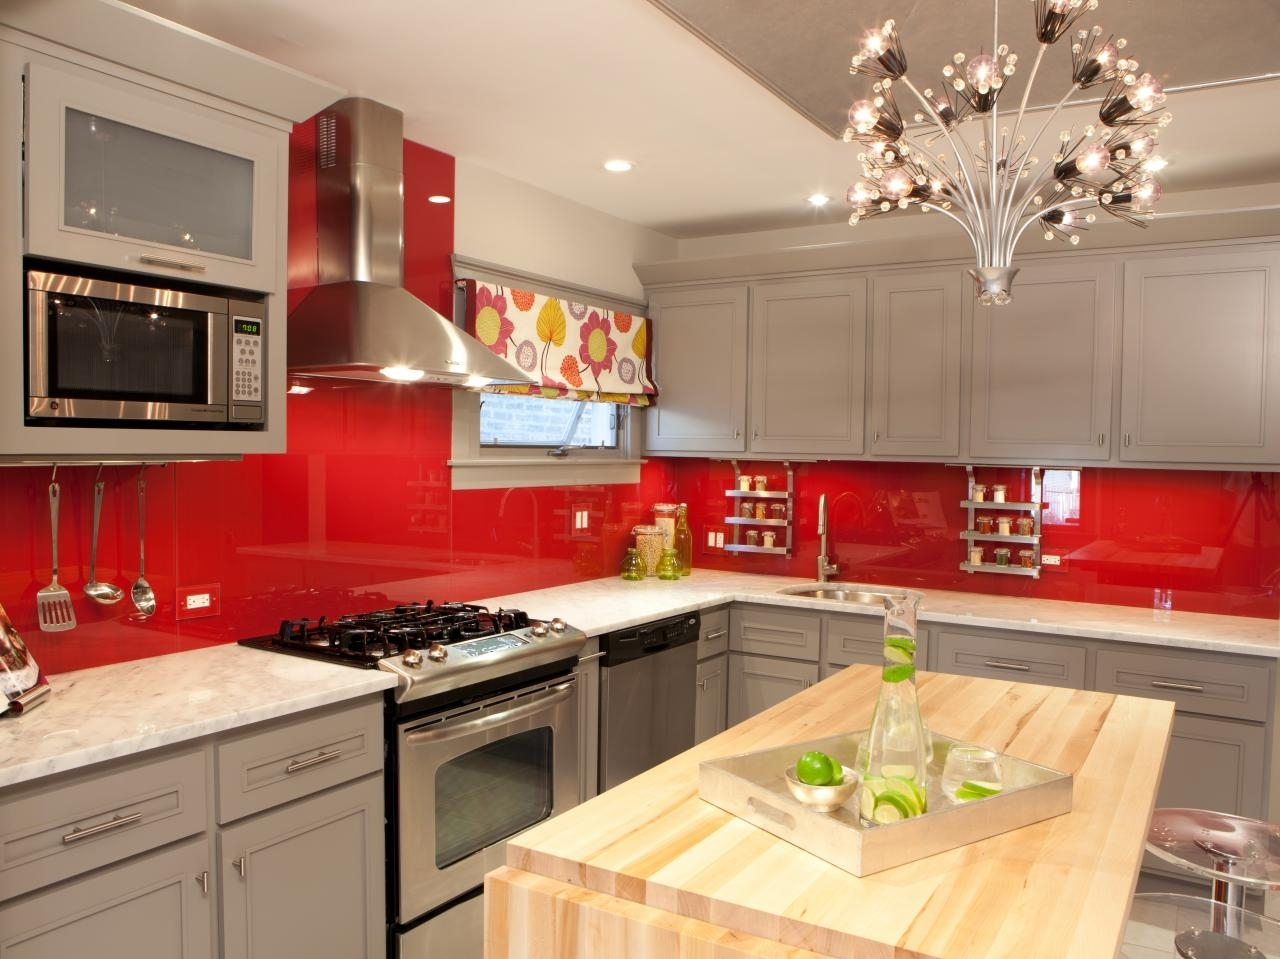 Red And White Kitchen Designs Black White And Red Wall Decor Red Intended For Most Popular Wall Accents Cabinets (View 9 of 15)